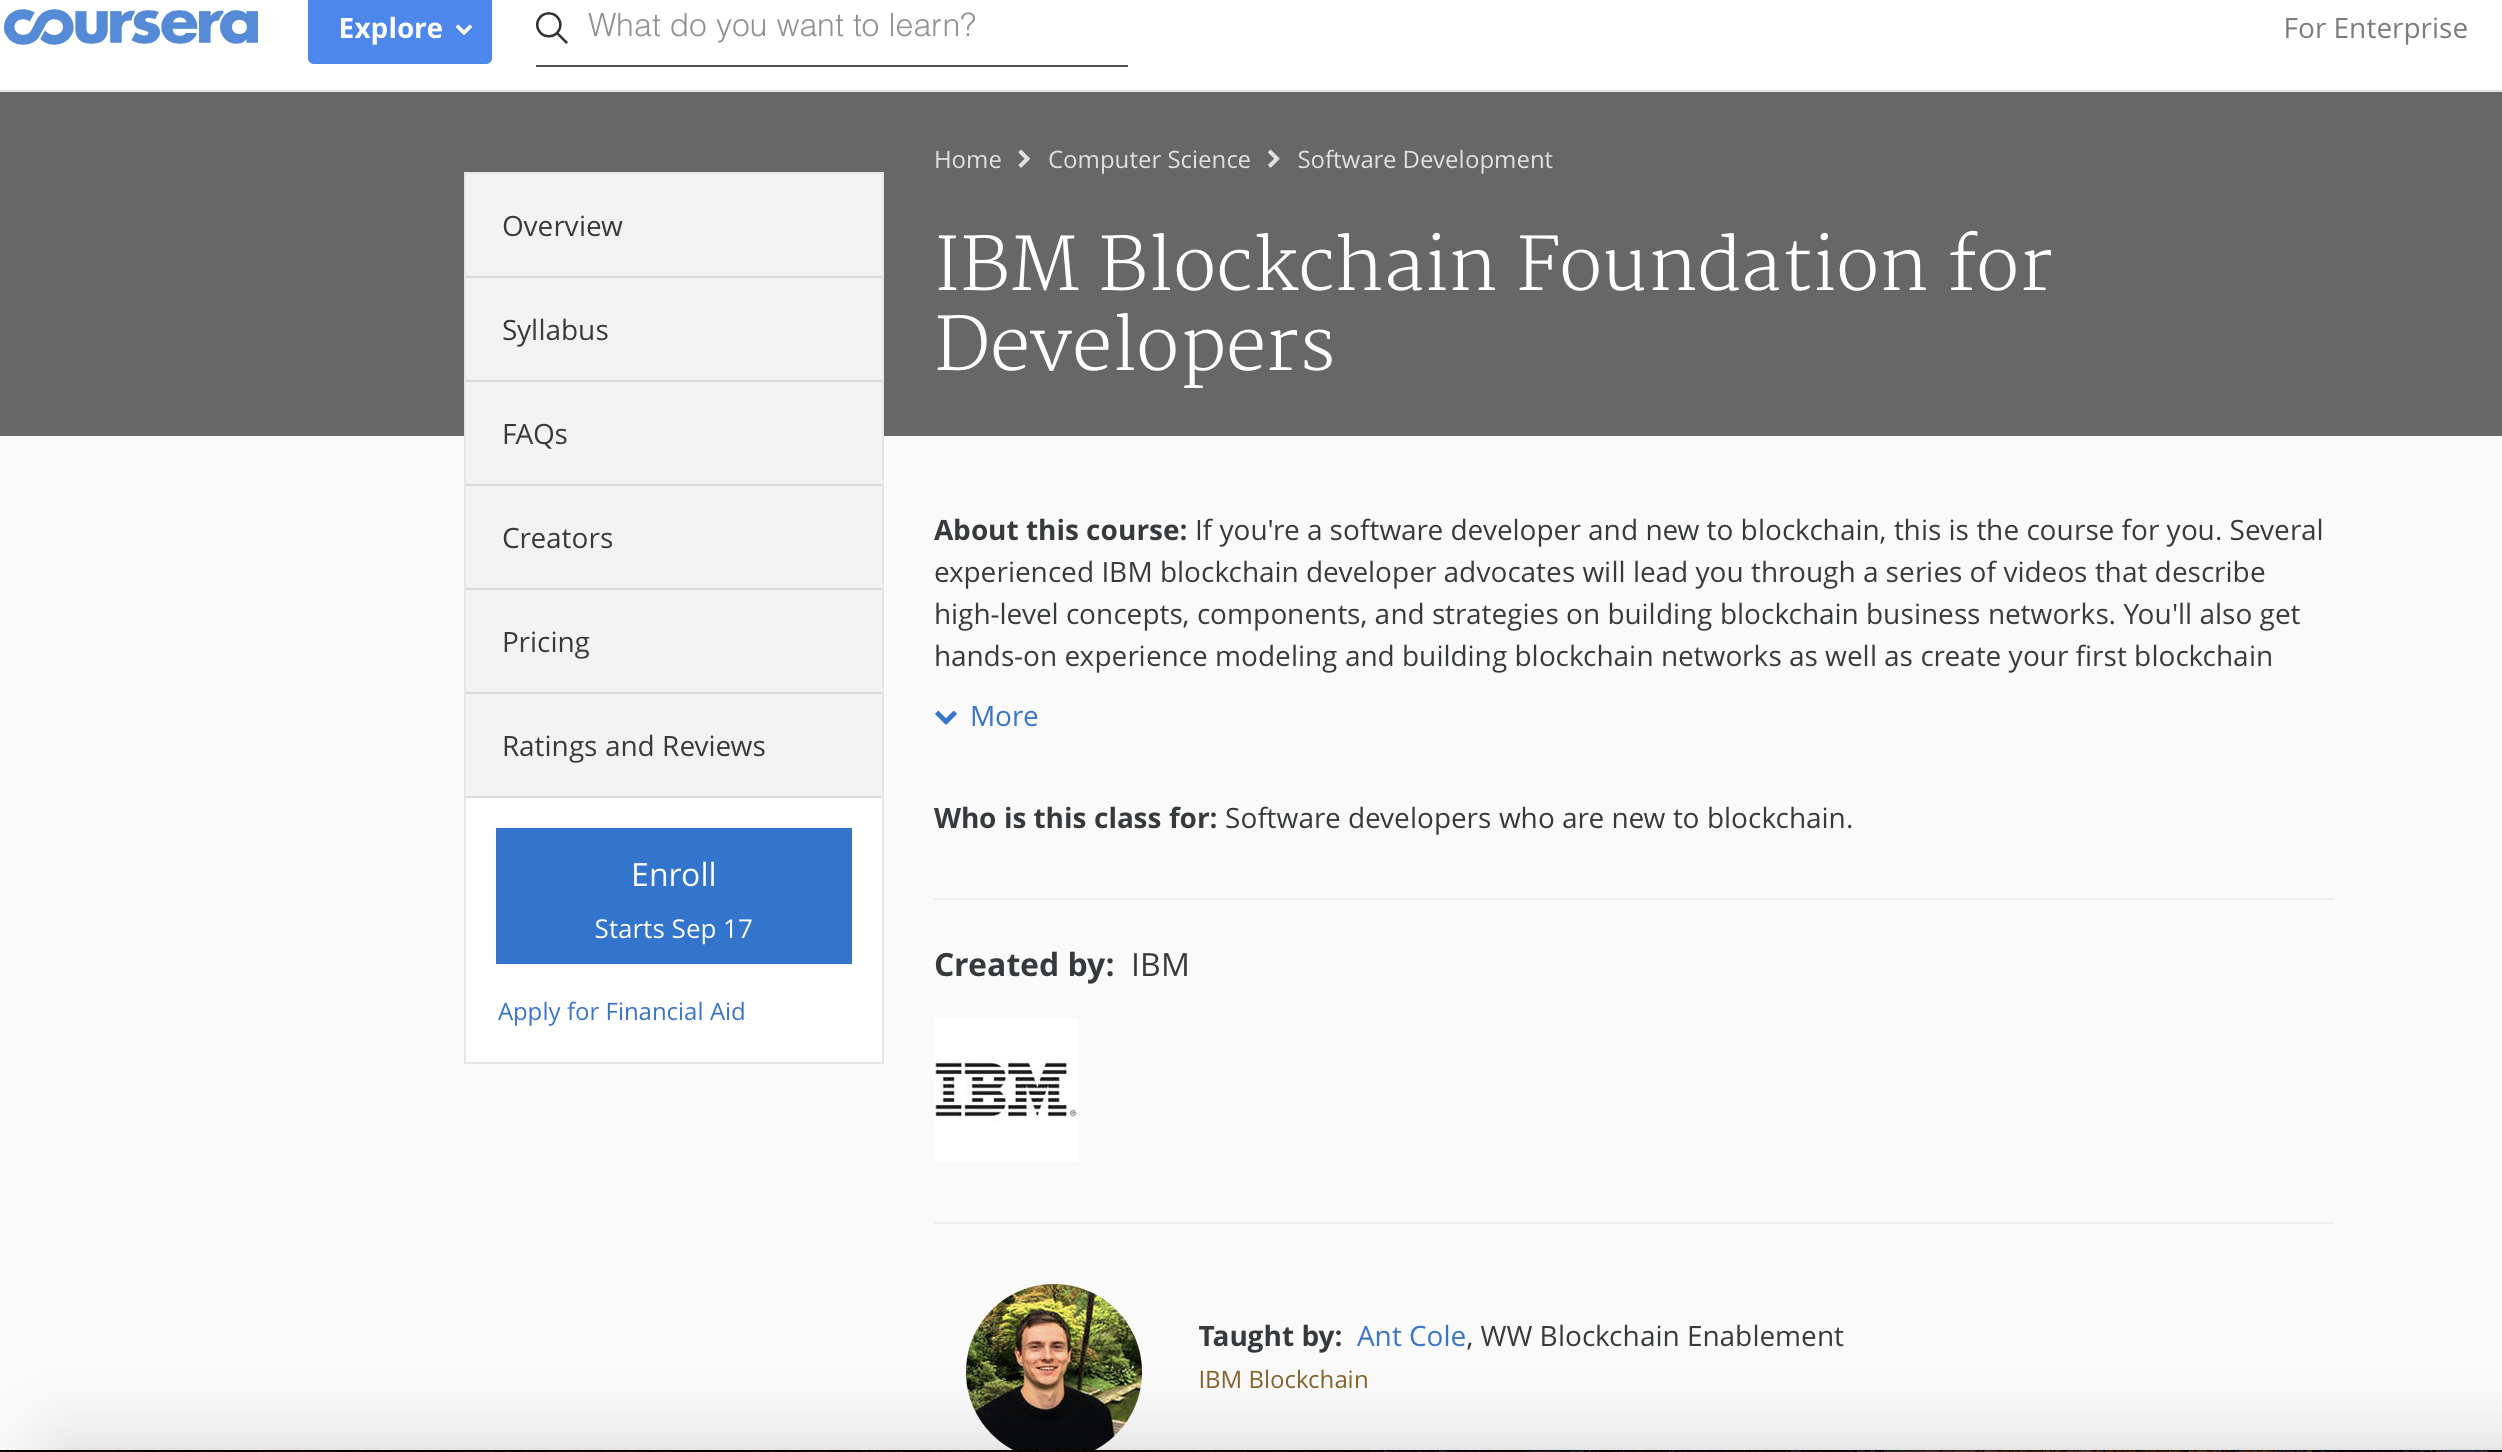 ibm blockchain course